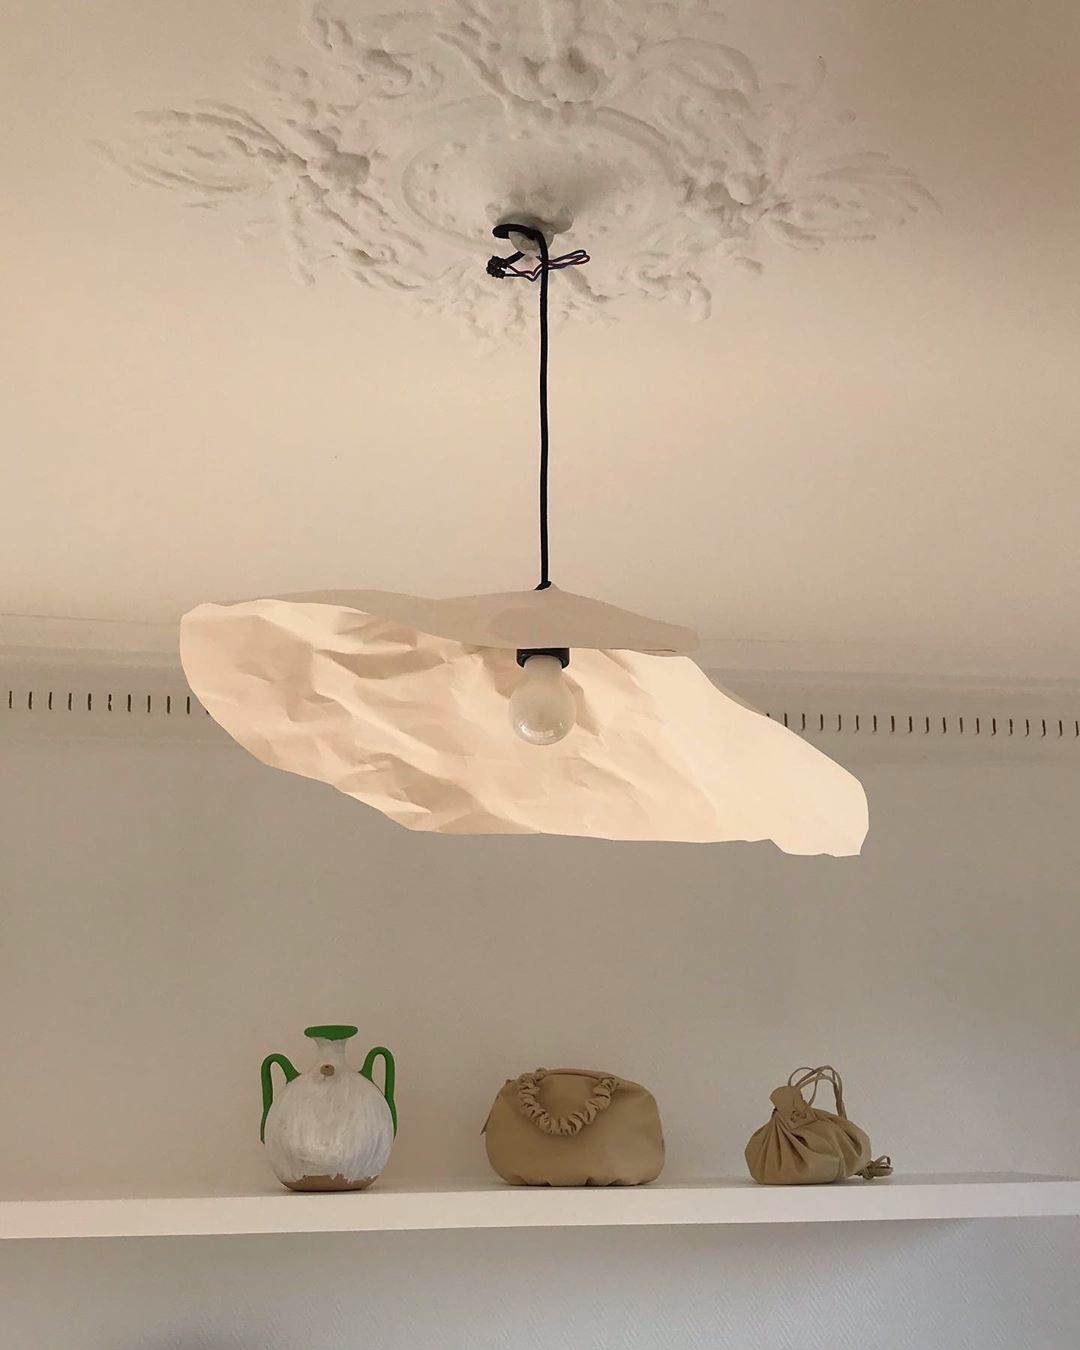 Paper Lamp Shade Lighting Inspiration Via Clarisse Demory In 2020 Lighting Inspiration Lamp Interior Deco